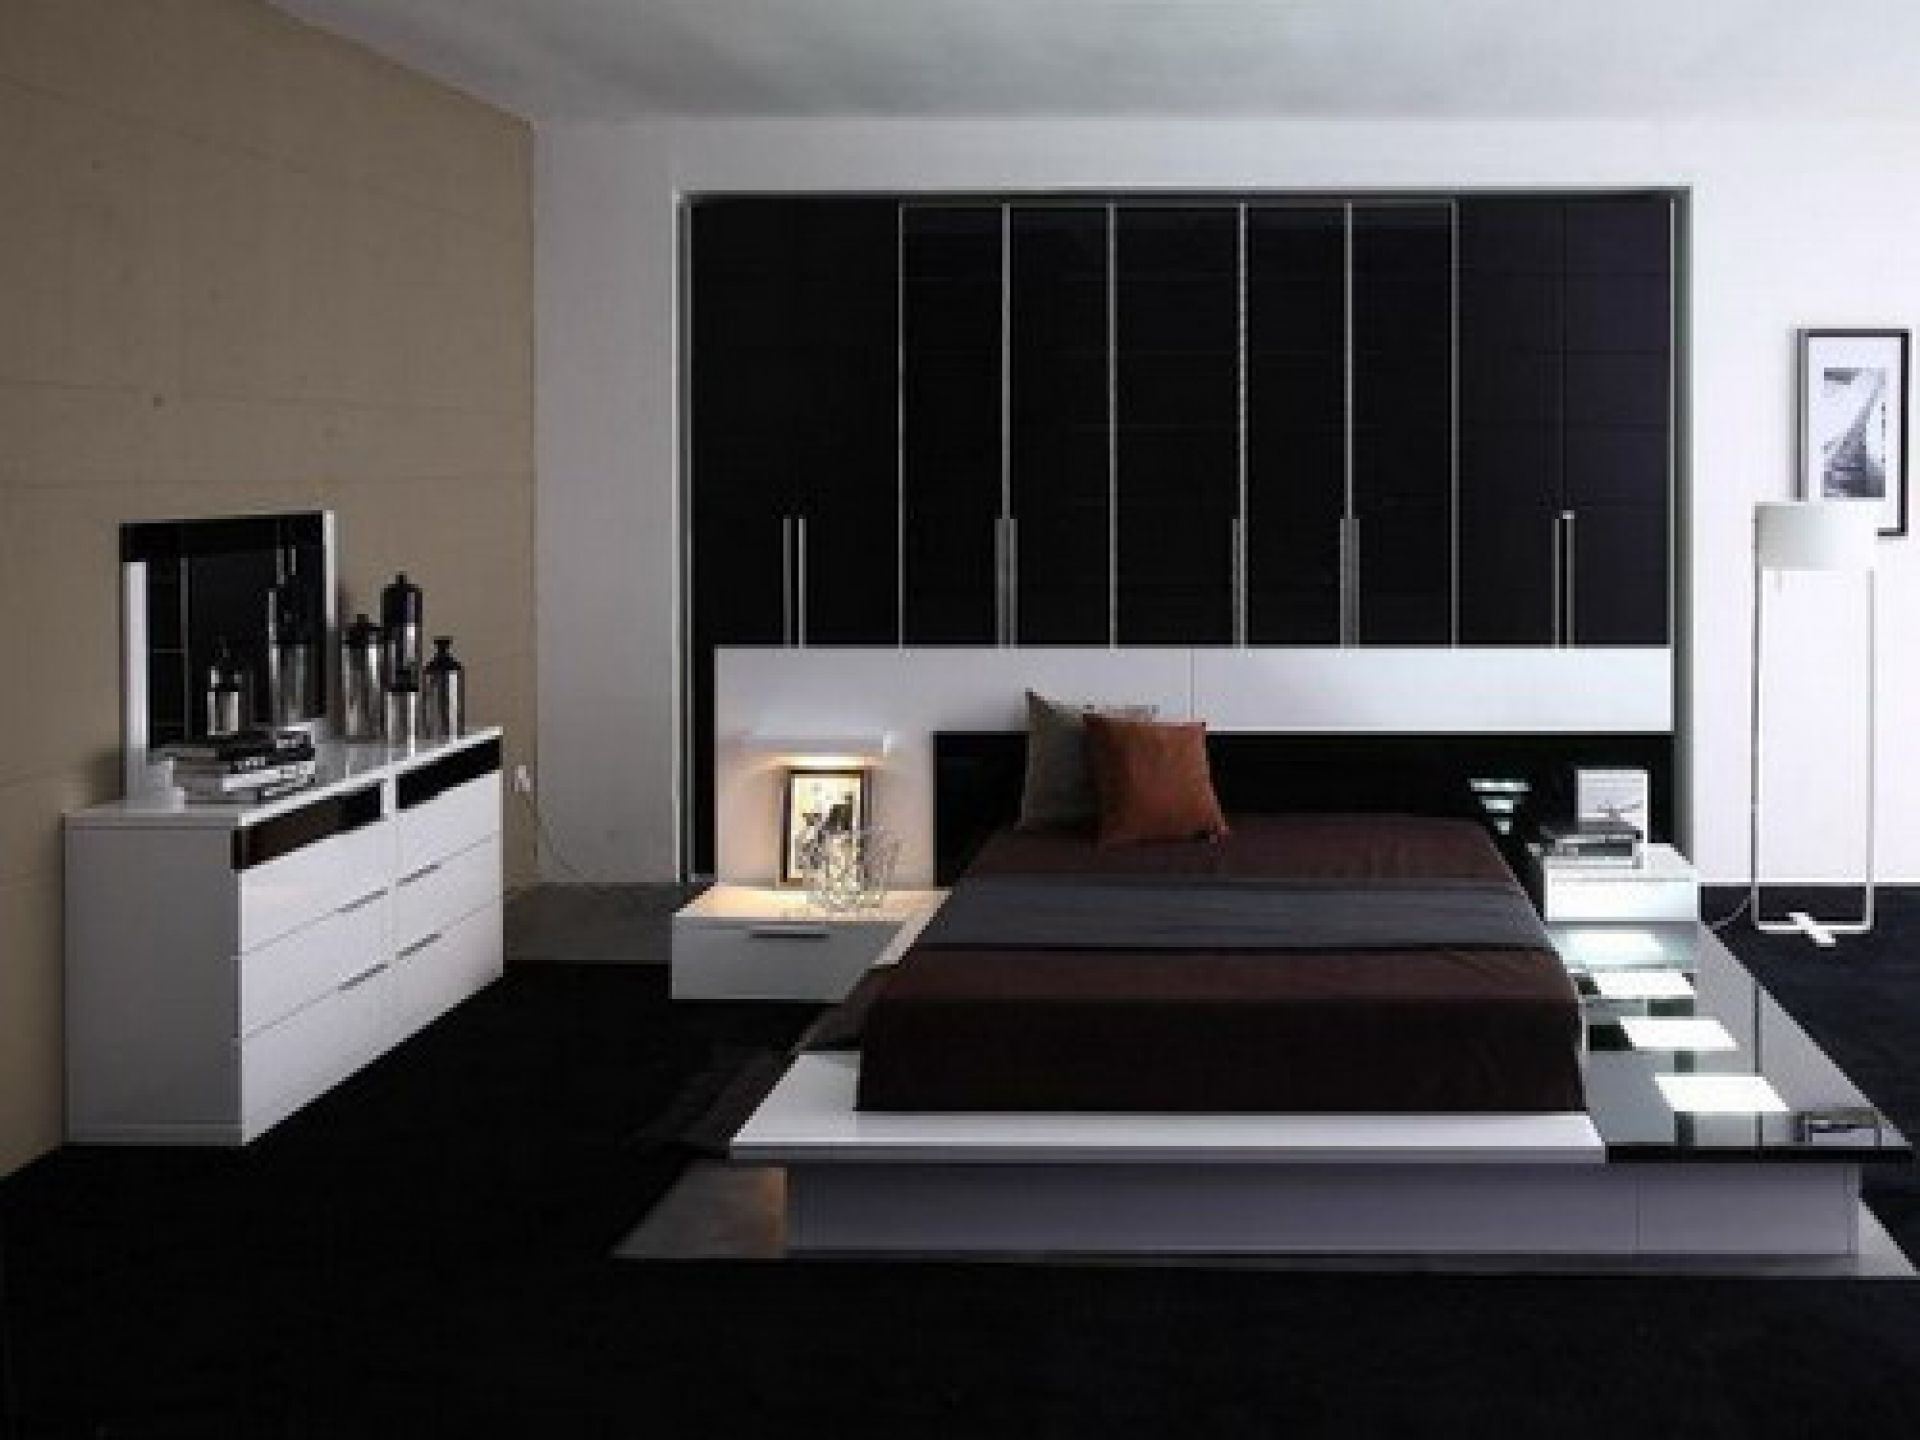 Modern Master Bedroom With Impera Modern Contemporary Lacquer Platform Bed By Vig Furniture Impera Dresser By Vig Furniture